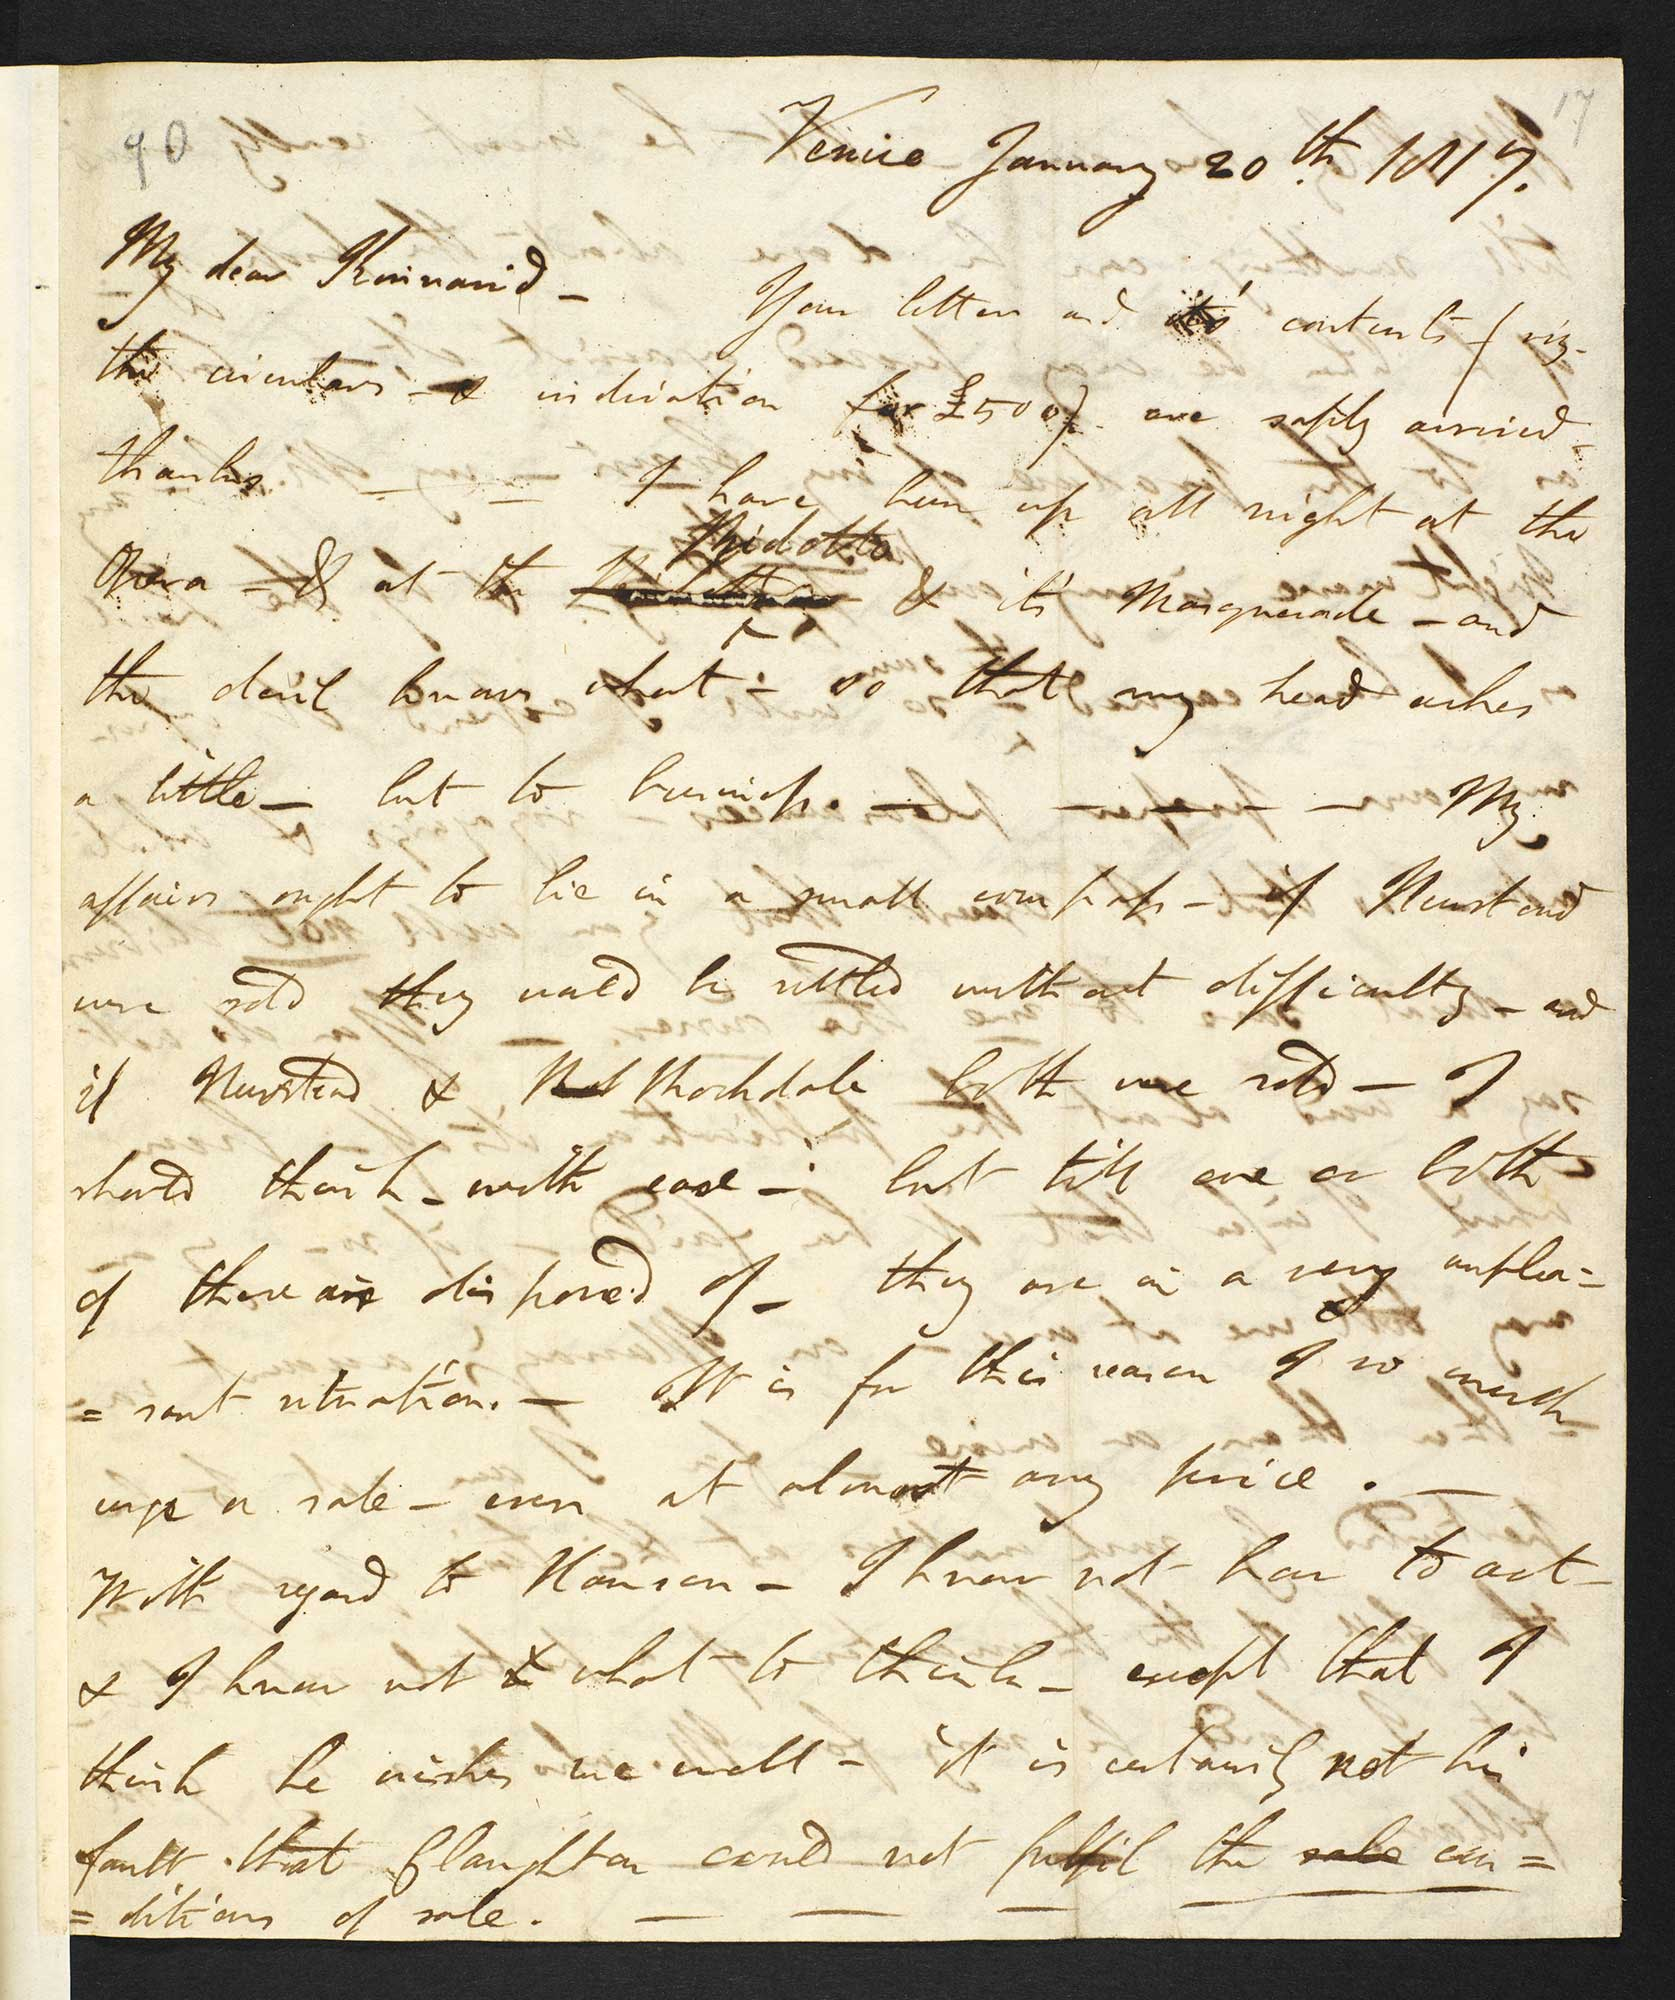 Letter from Lord Byron to Douglas Kinnaird about other poets